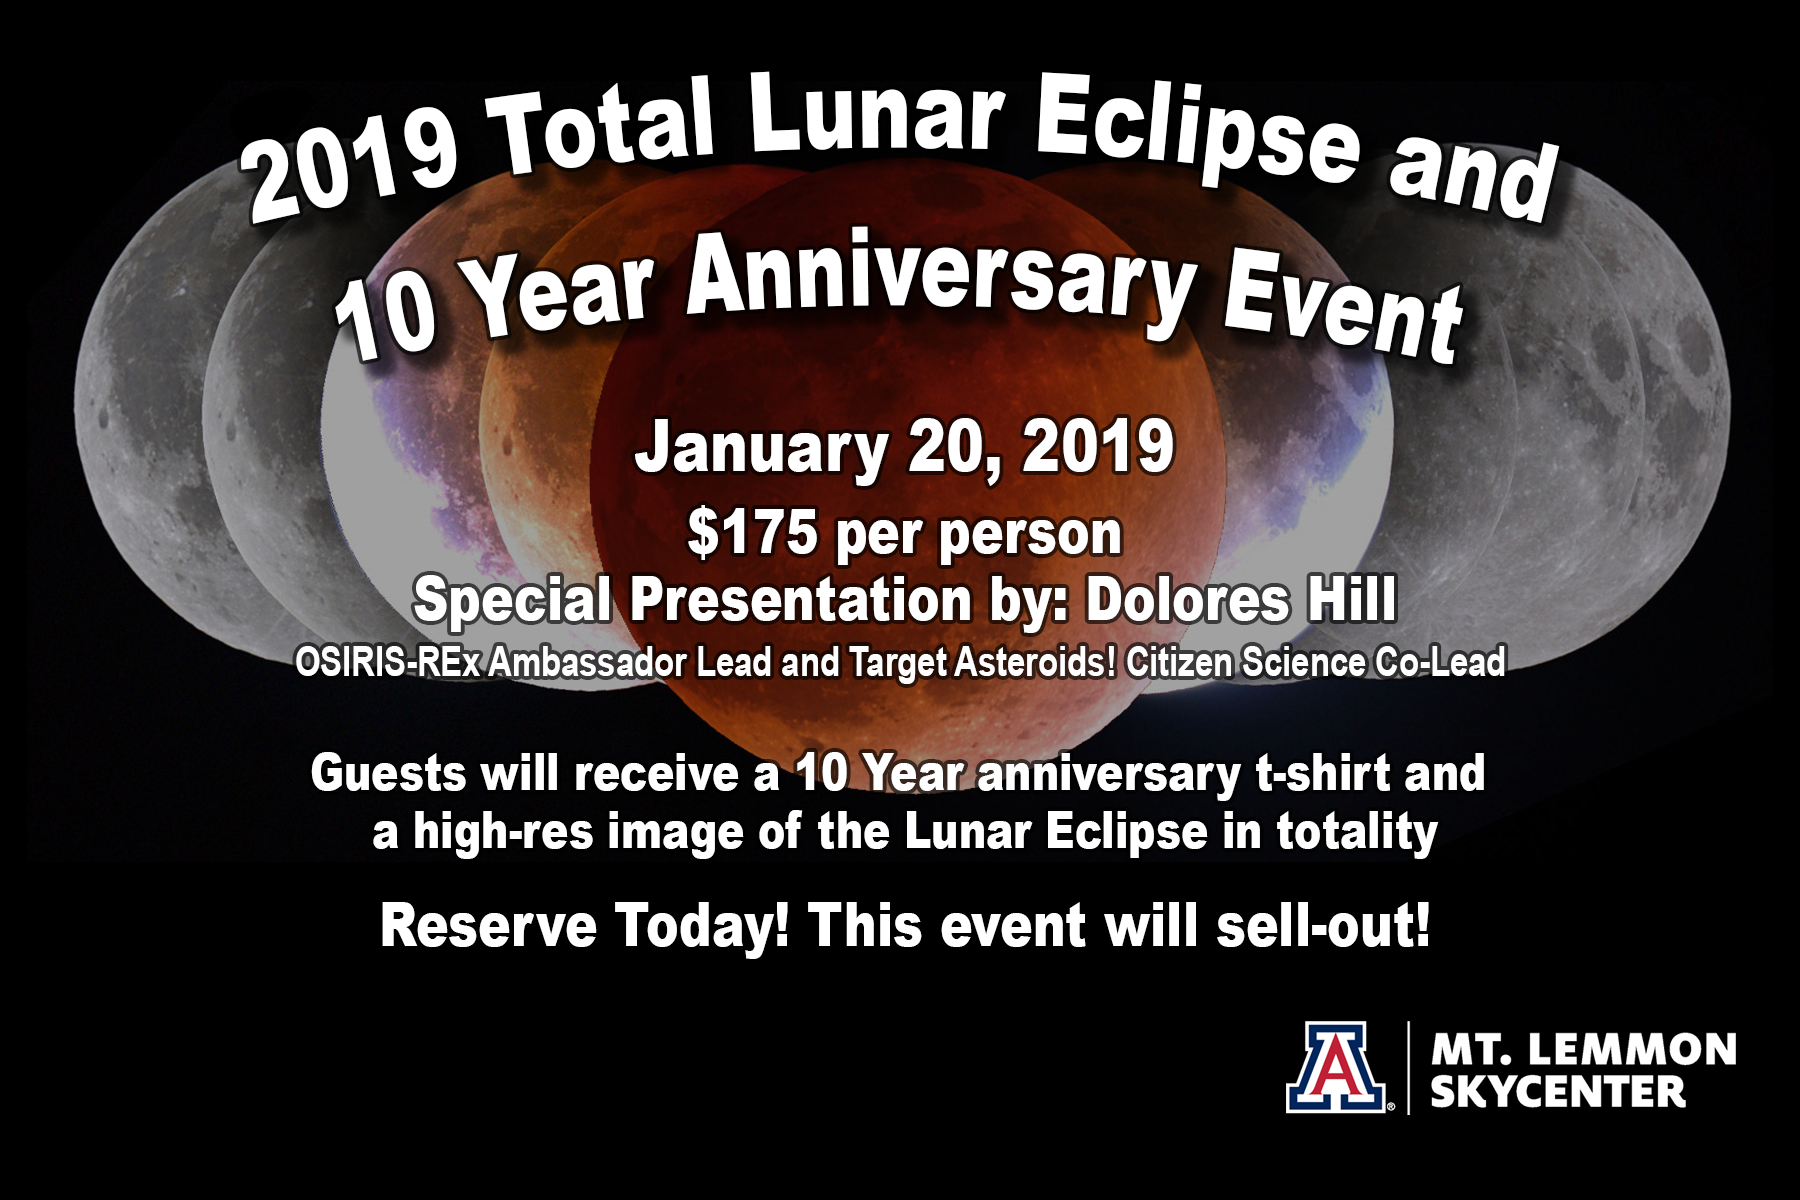 2019 Lunar Eclipse And 10th Anniversary Event Skycenter